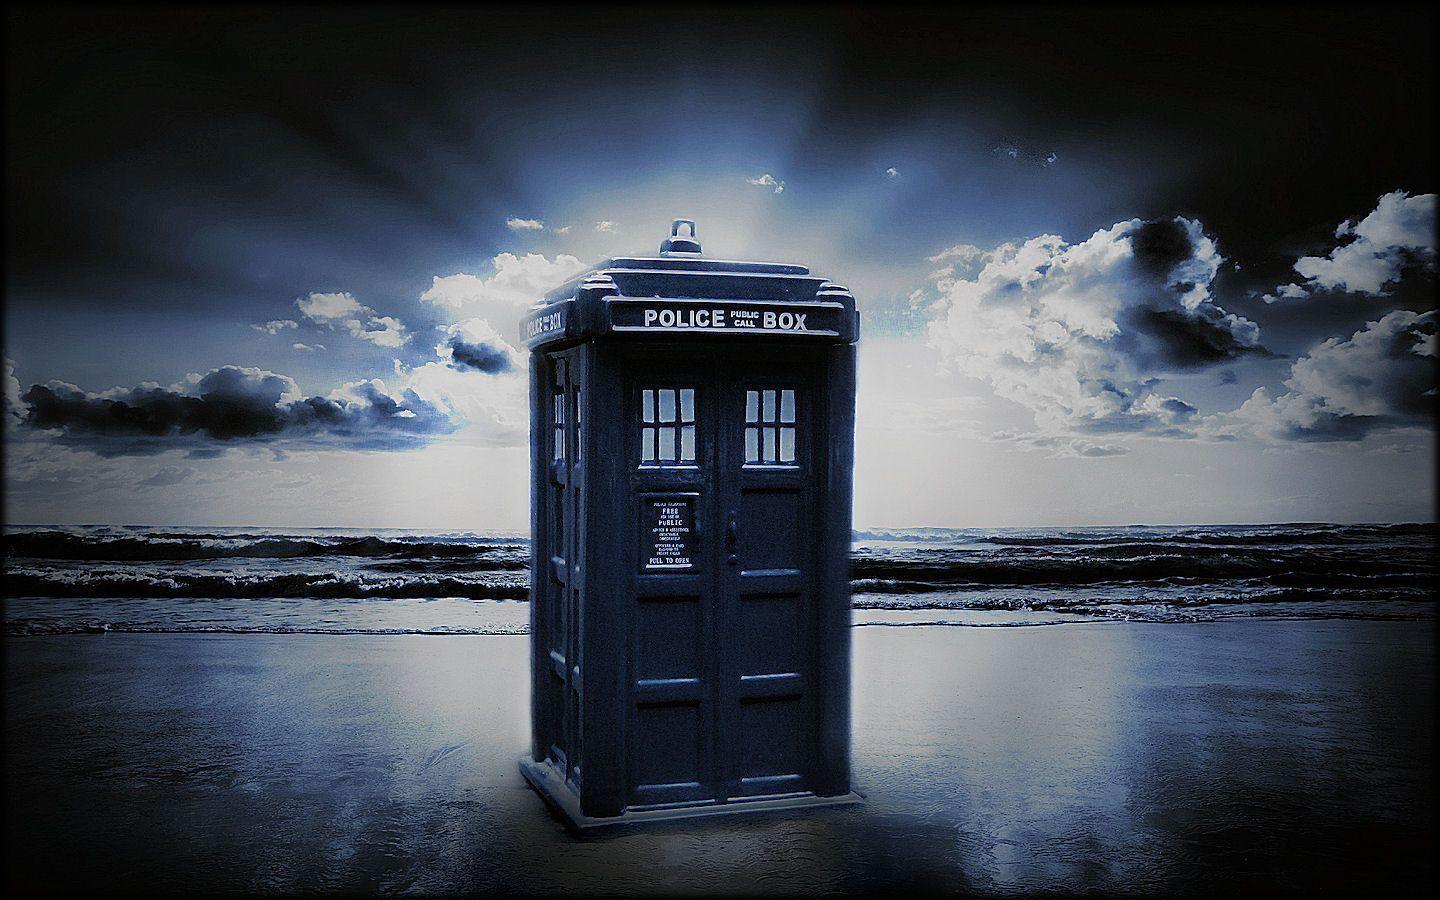 tardis images hd wallpaper - photo #20